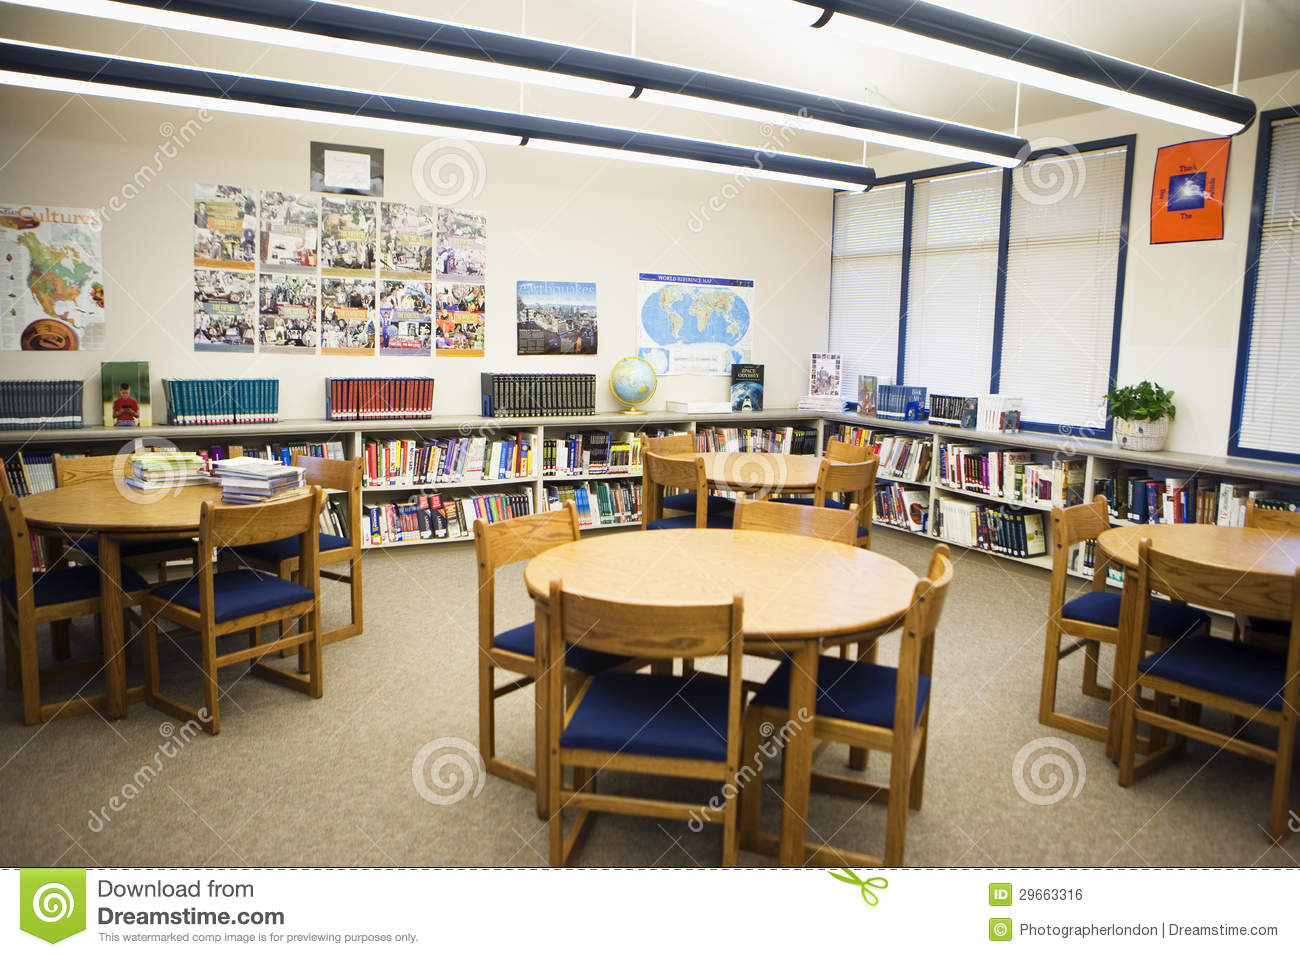 Table And Chairs Arranged In High School Library Royalty Free Stock Image I